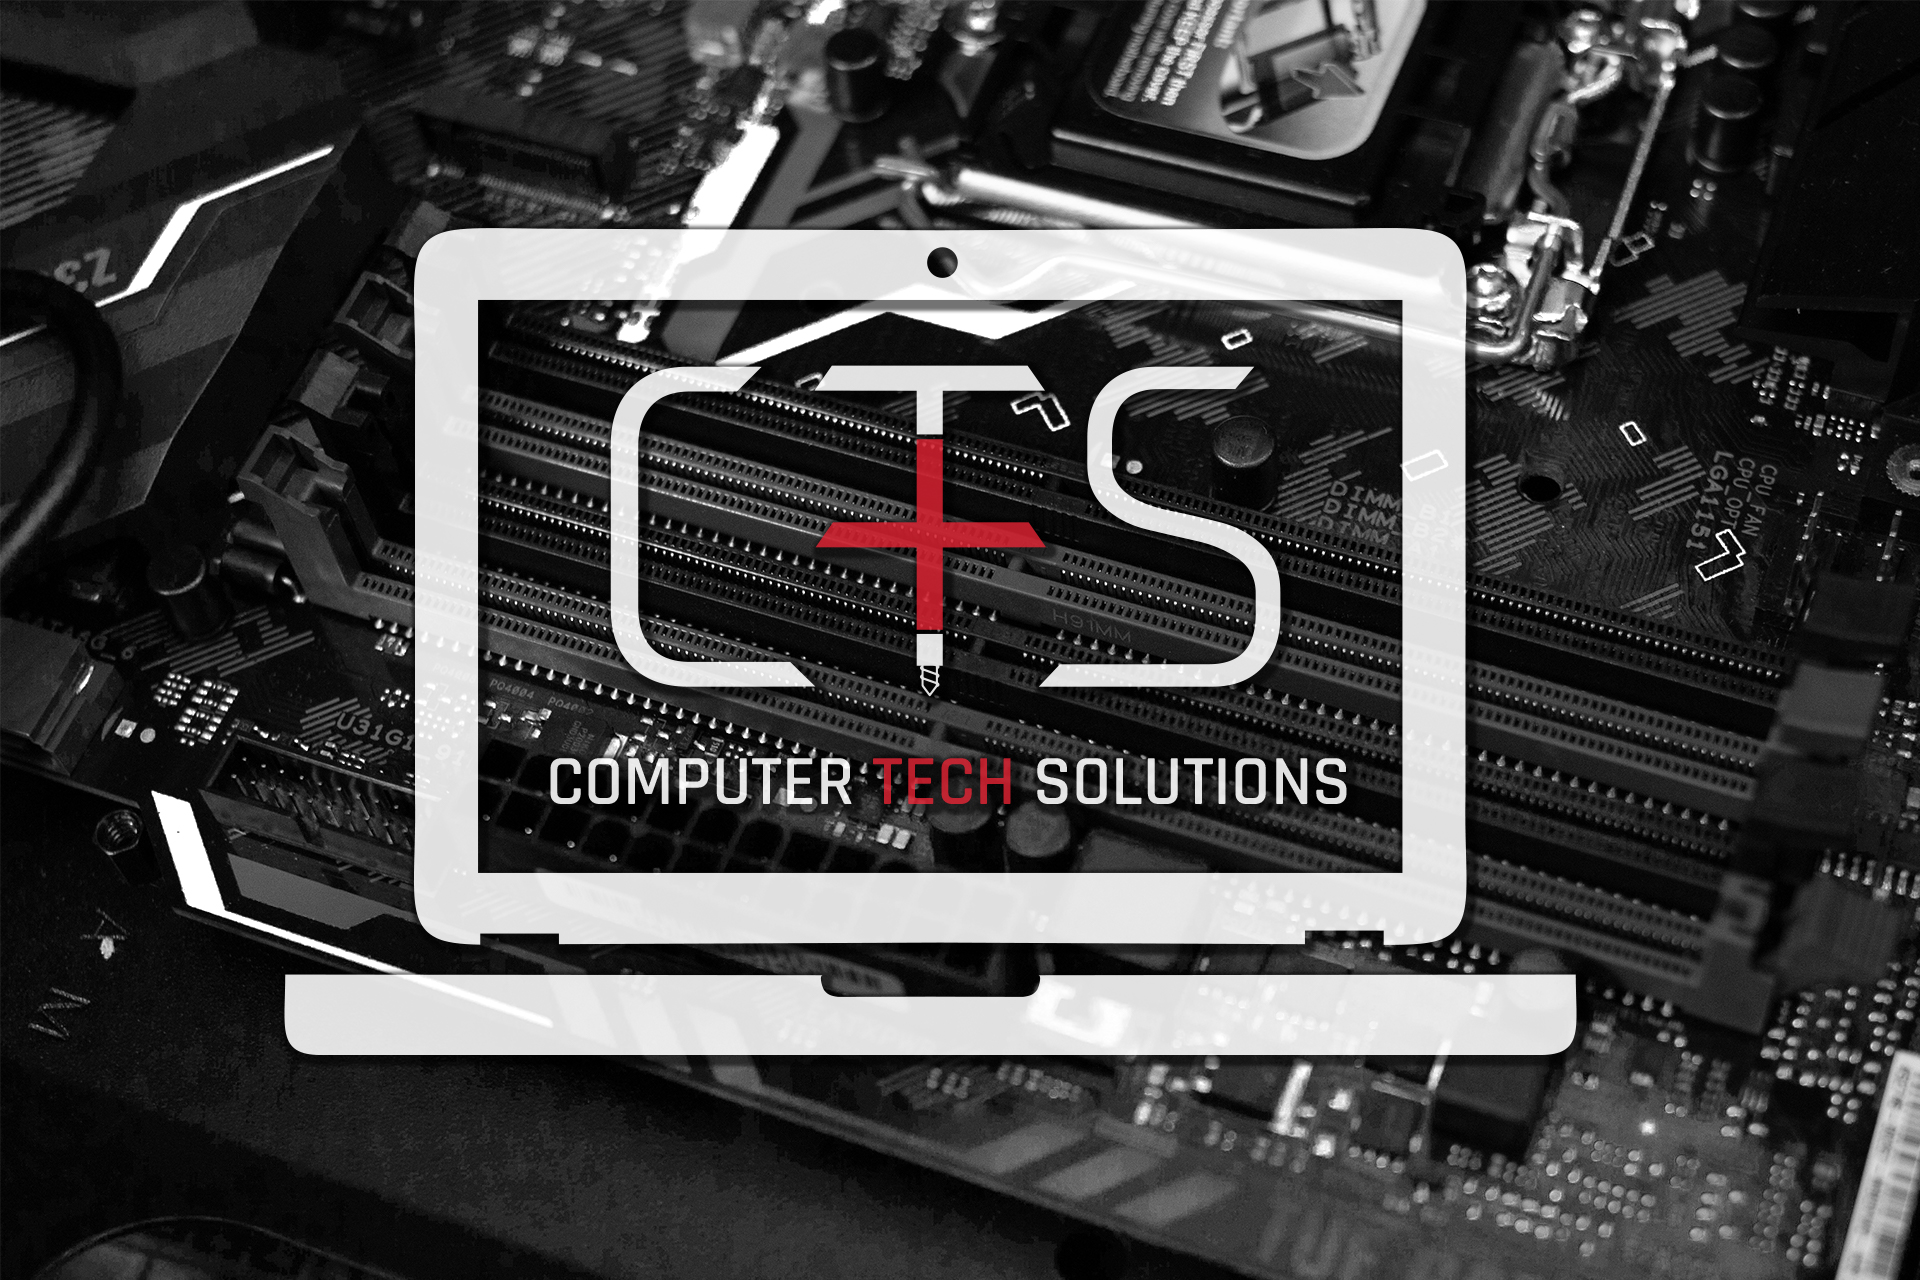 cts-tech solutions